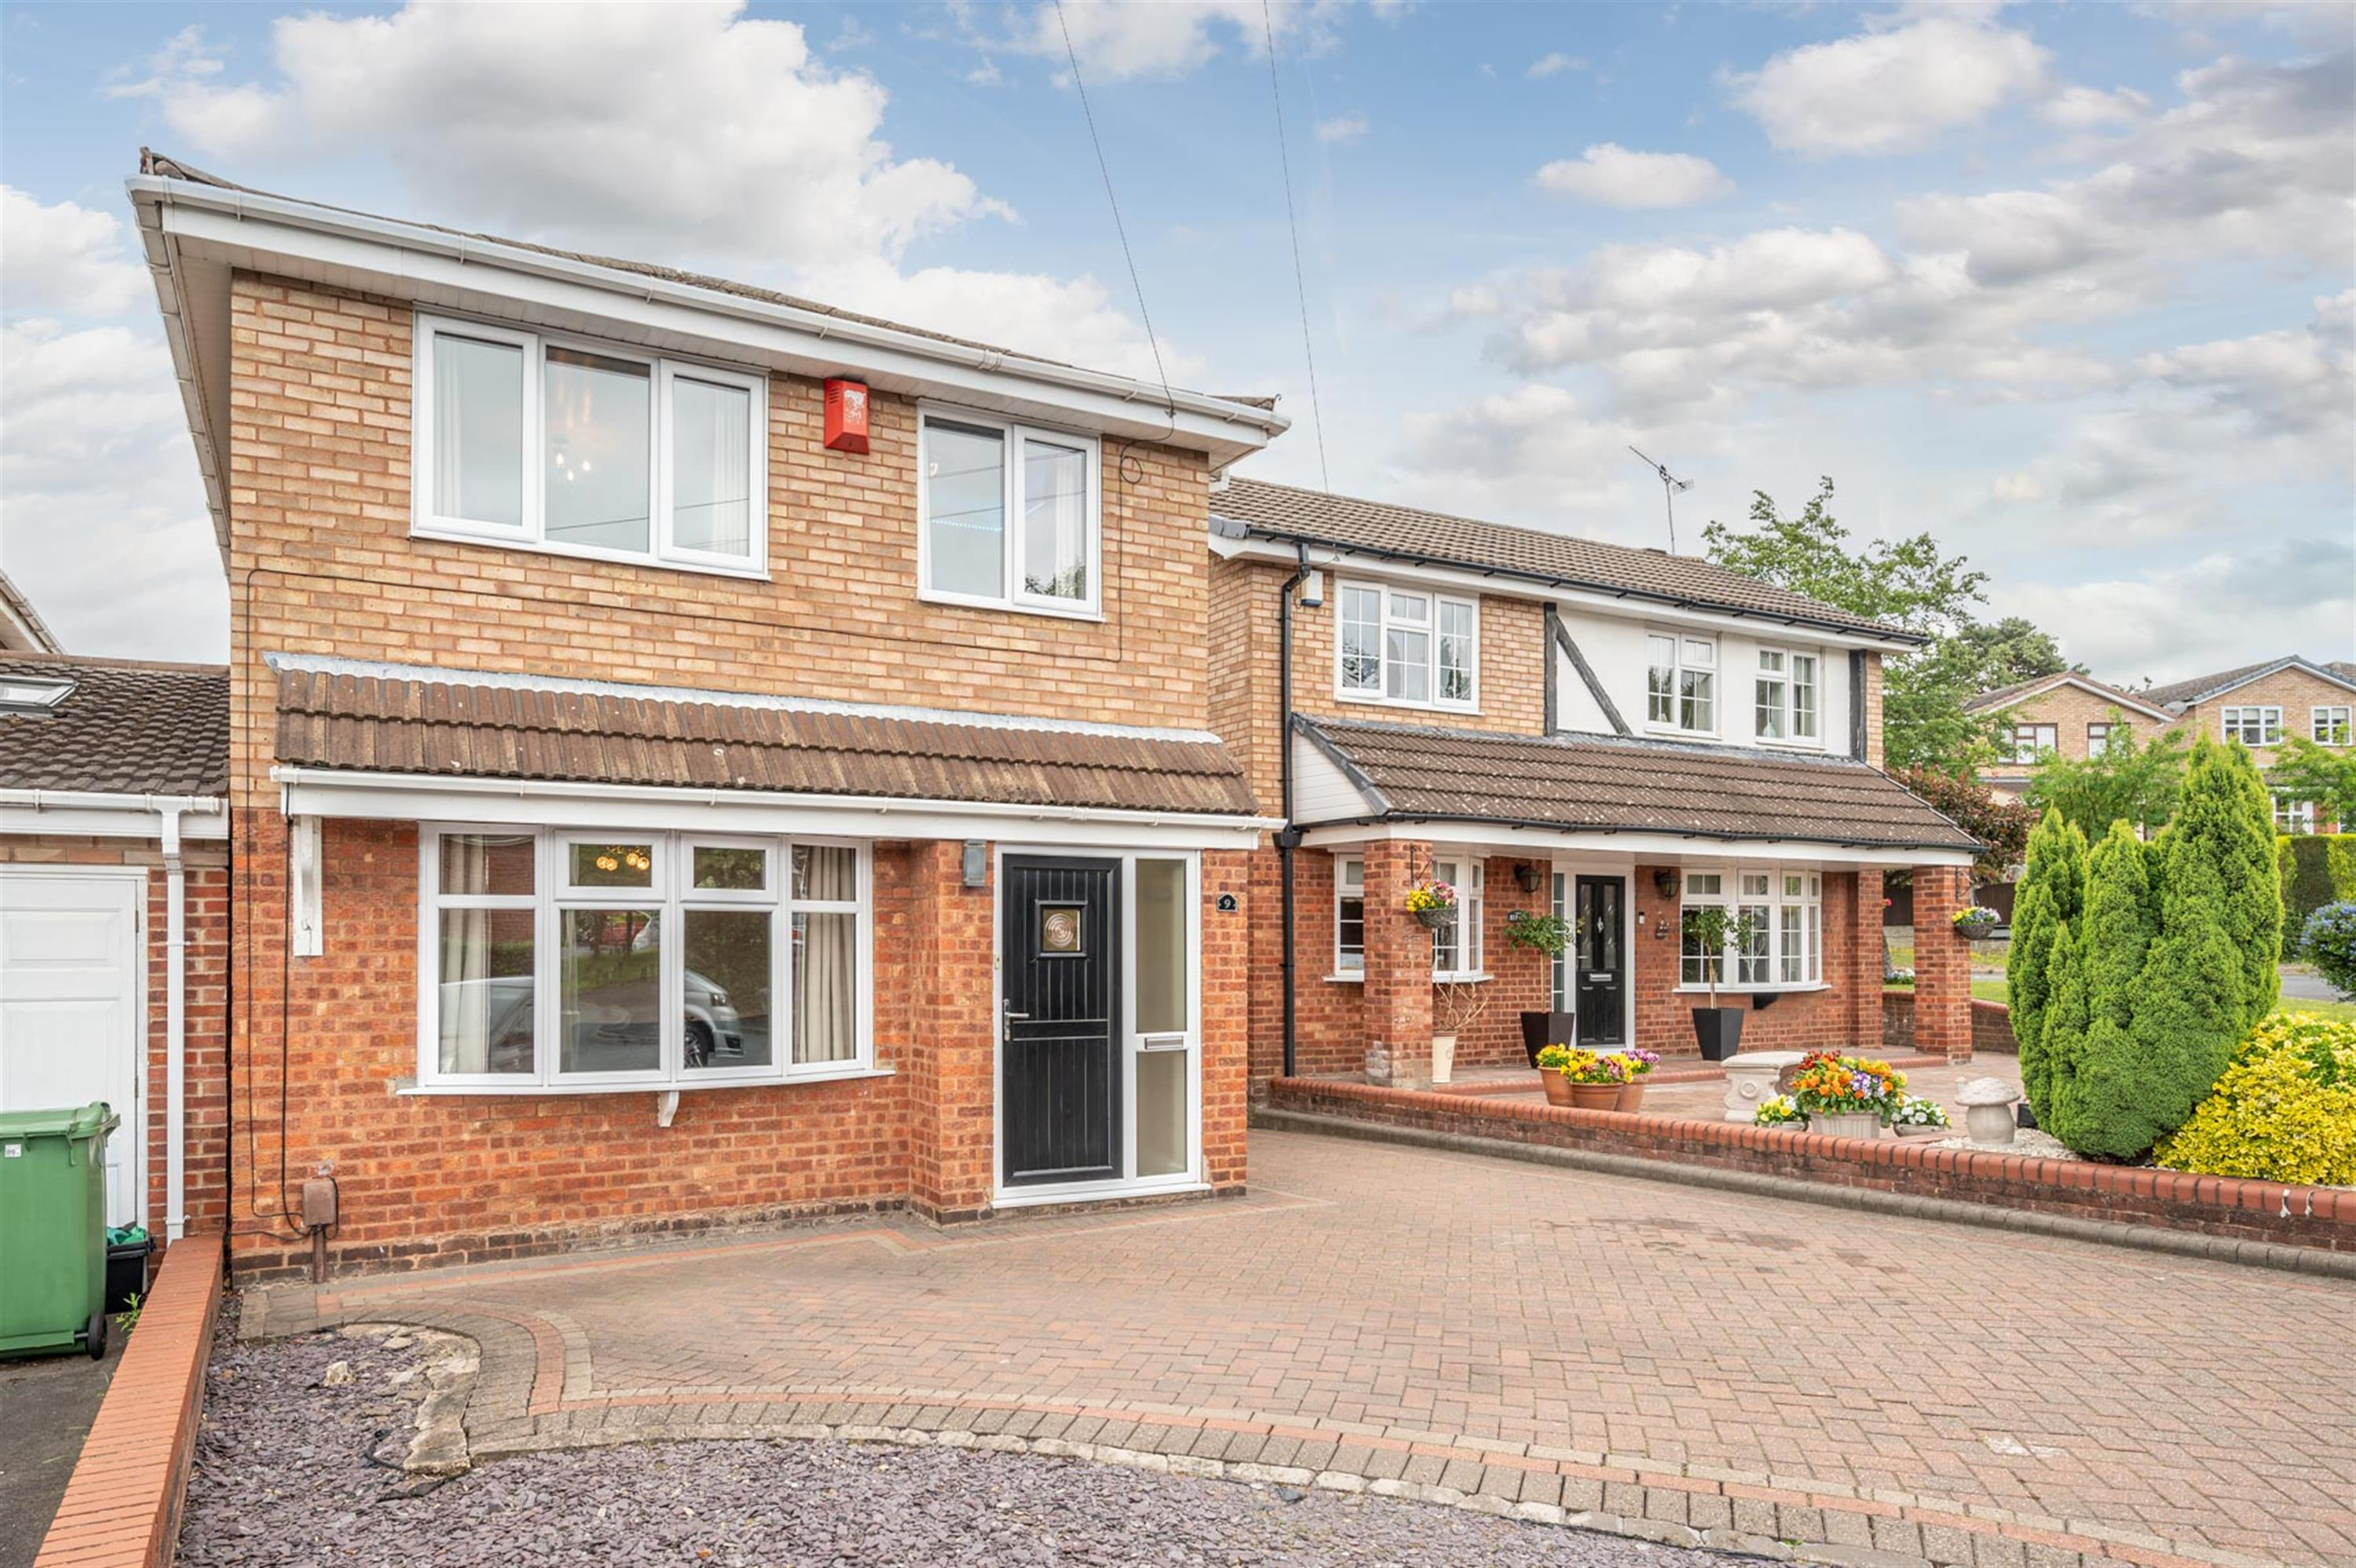 Tarry Hollow Road, Brierley Hill, DY5 4TW